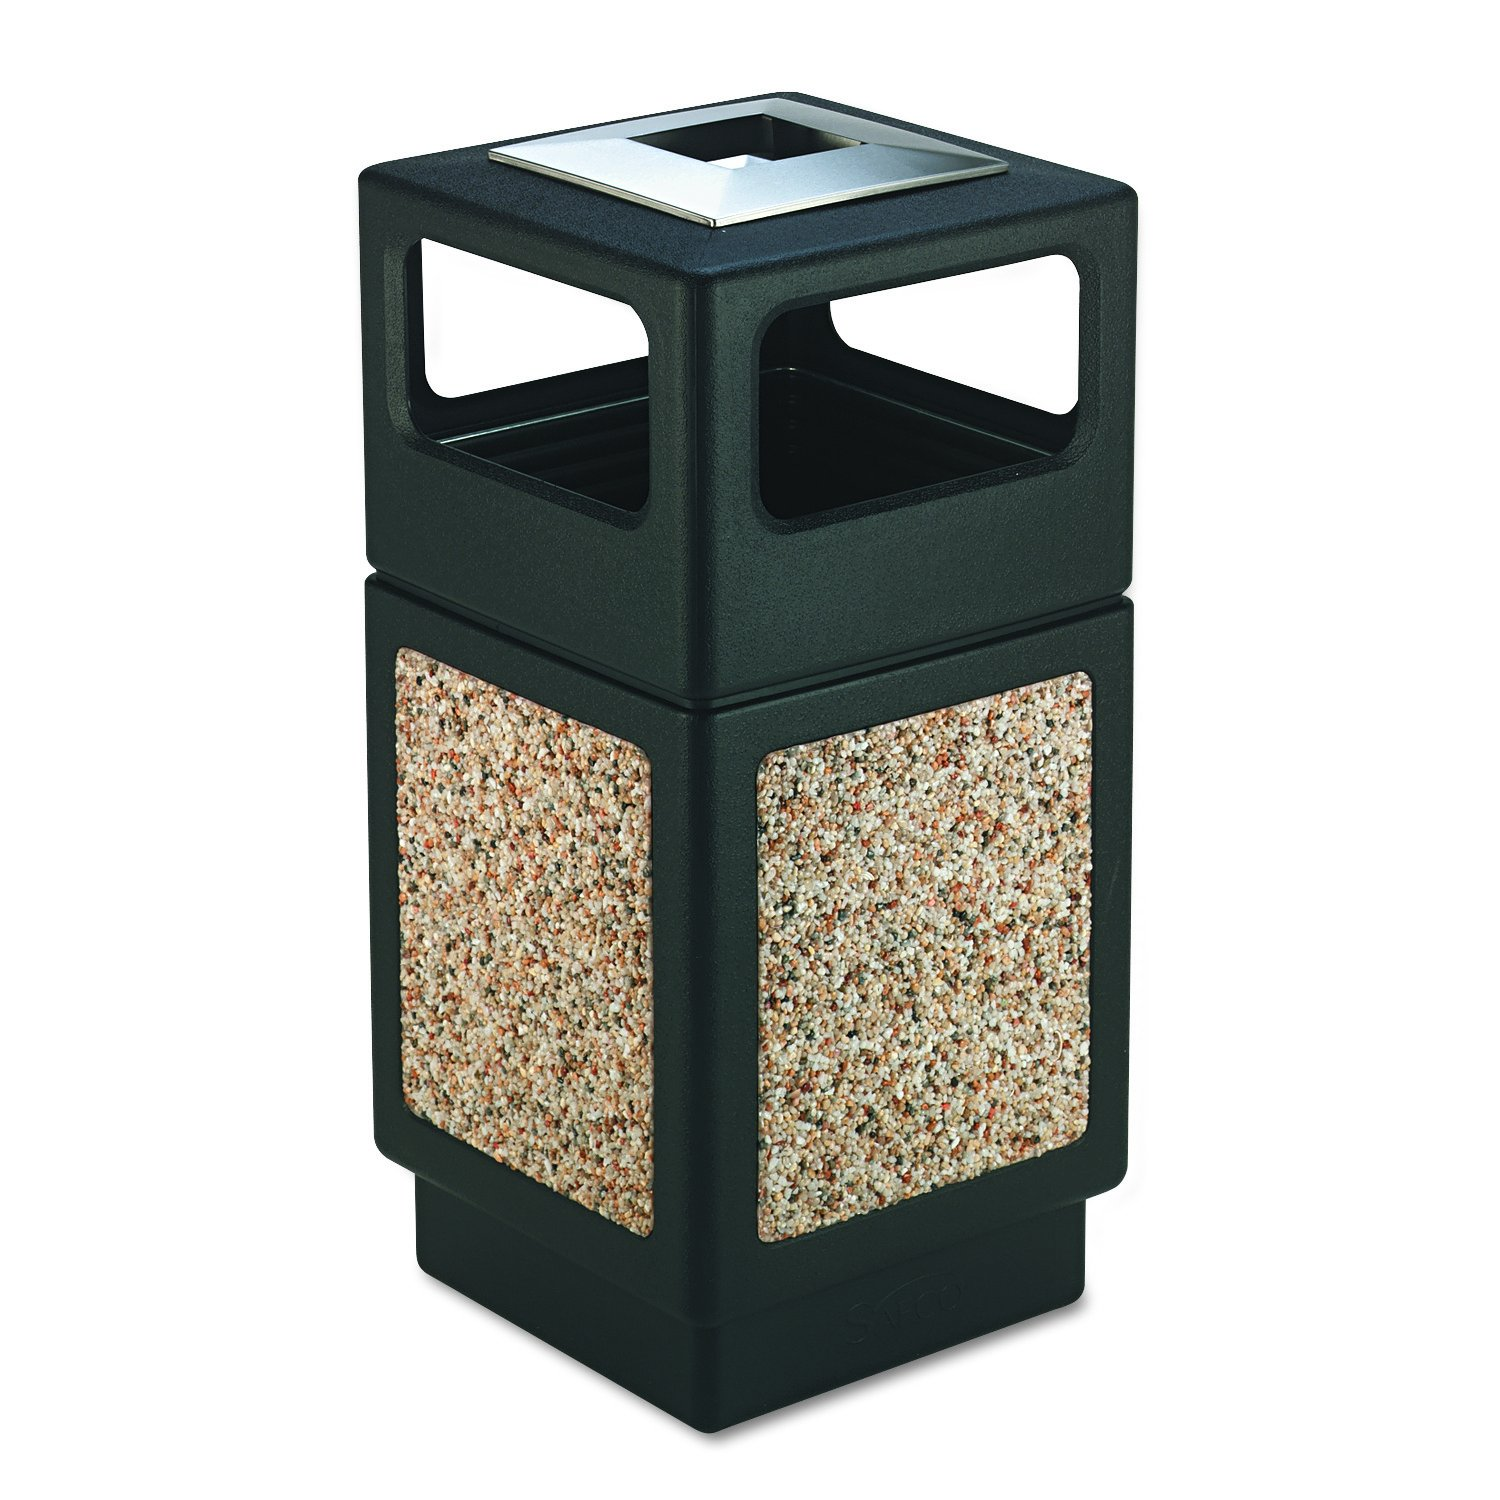 Safco Products 9473NC Canmeleon Aggregate Panel Trash Can, Ash Urn/Side Open, 38-Gallon, Black